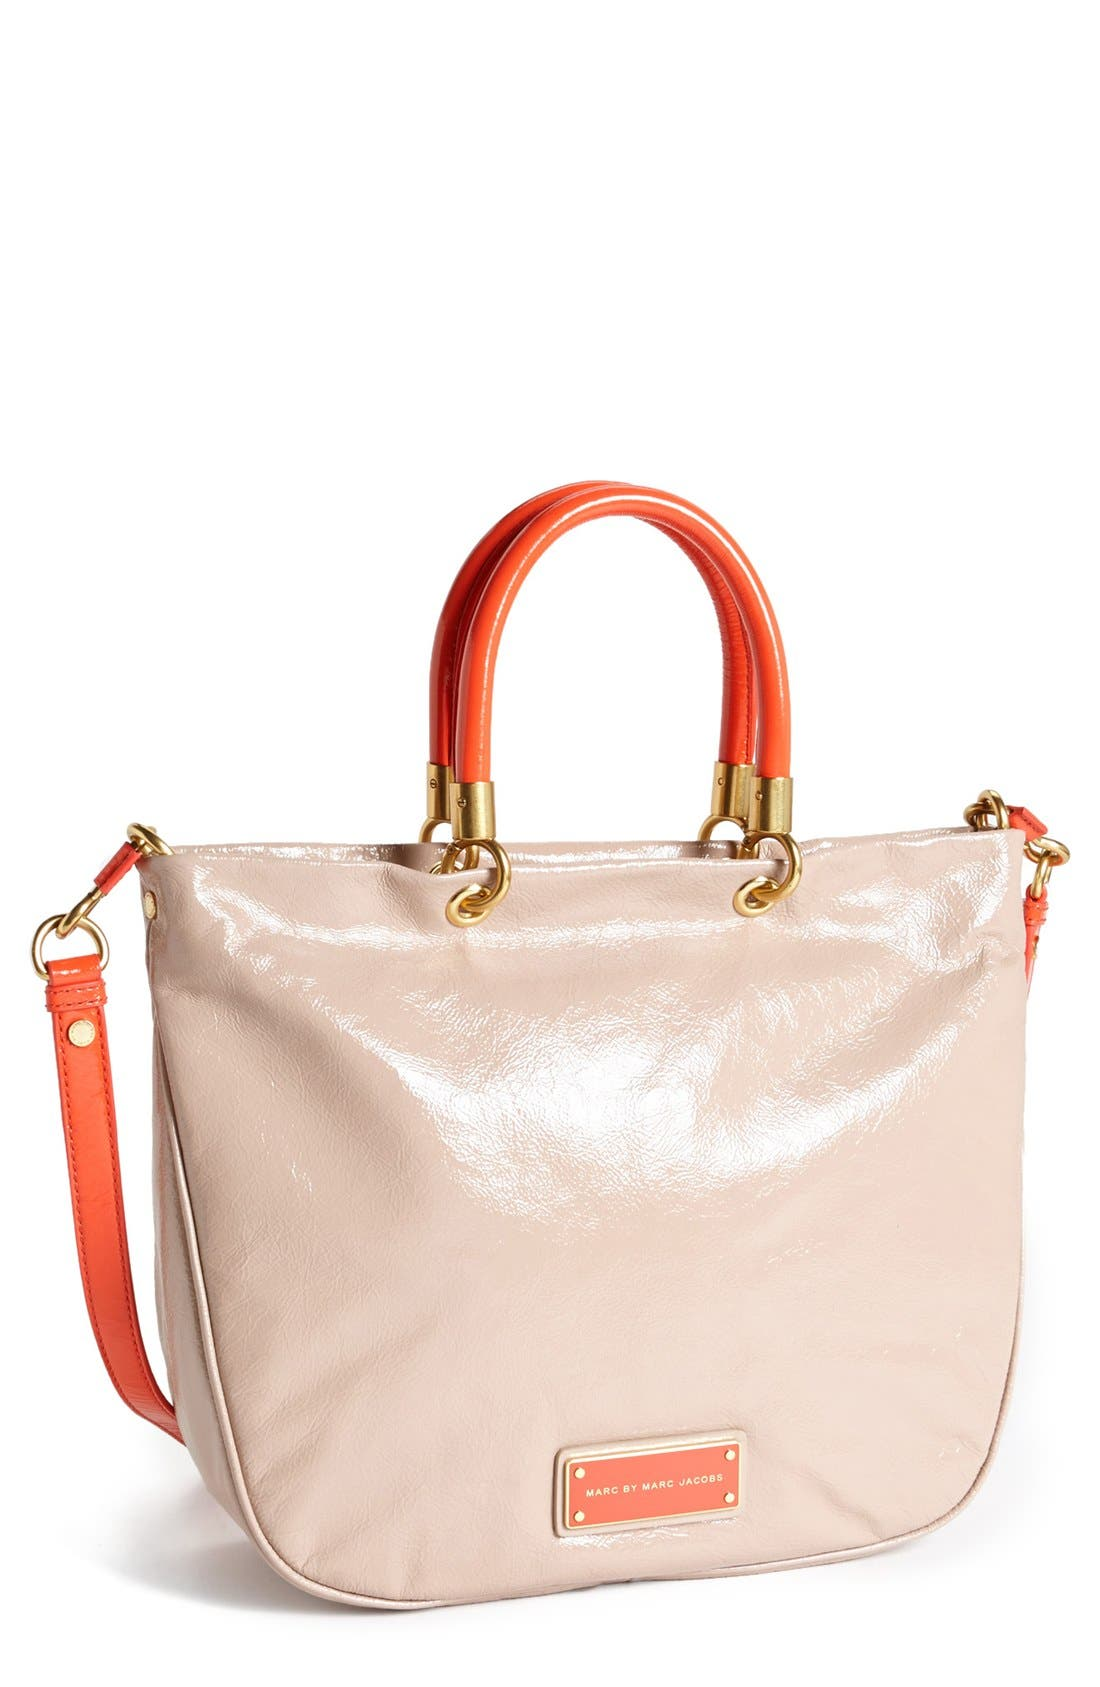 Main Image - MARC BY MARC JACOBS 'Mini' Glazed Shopper